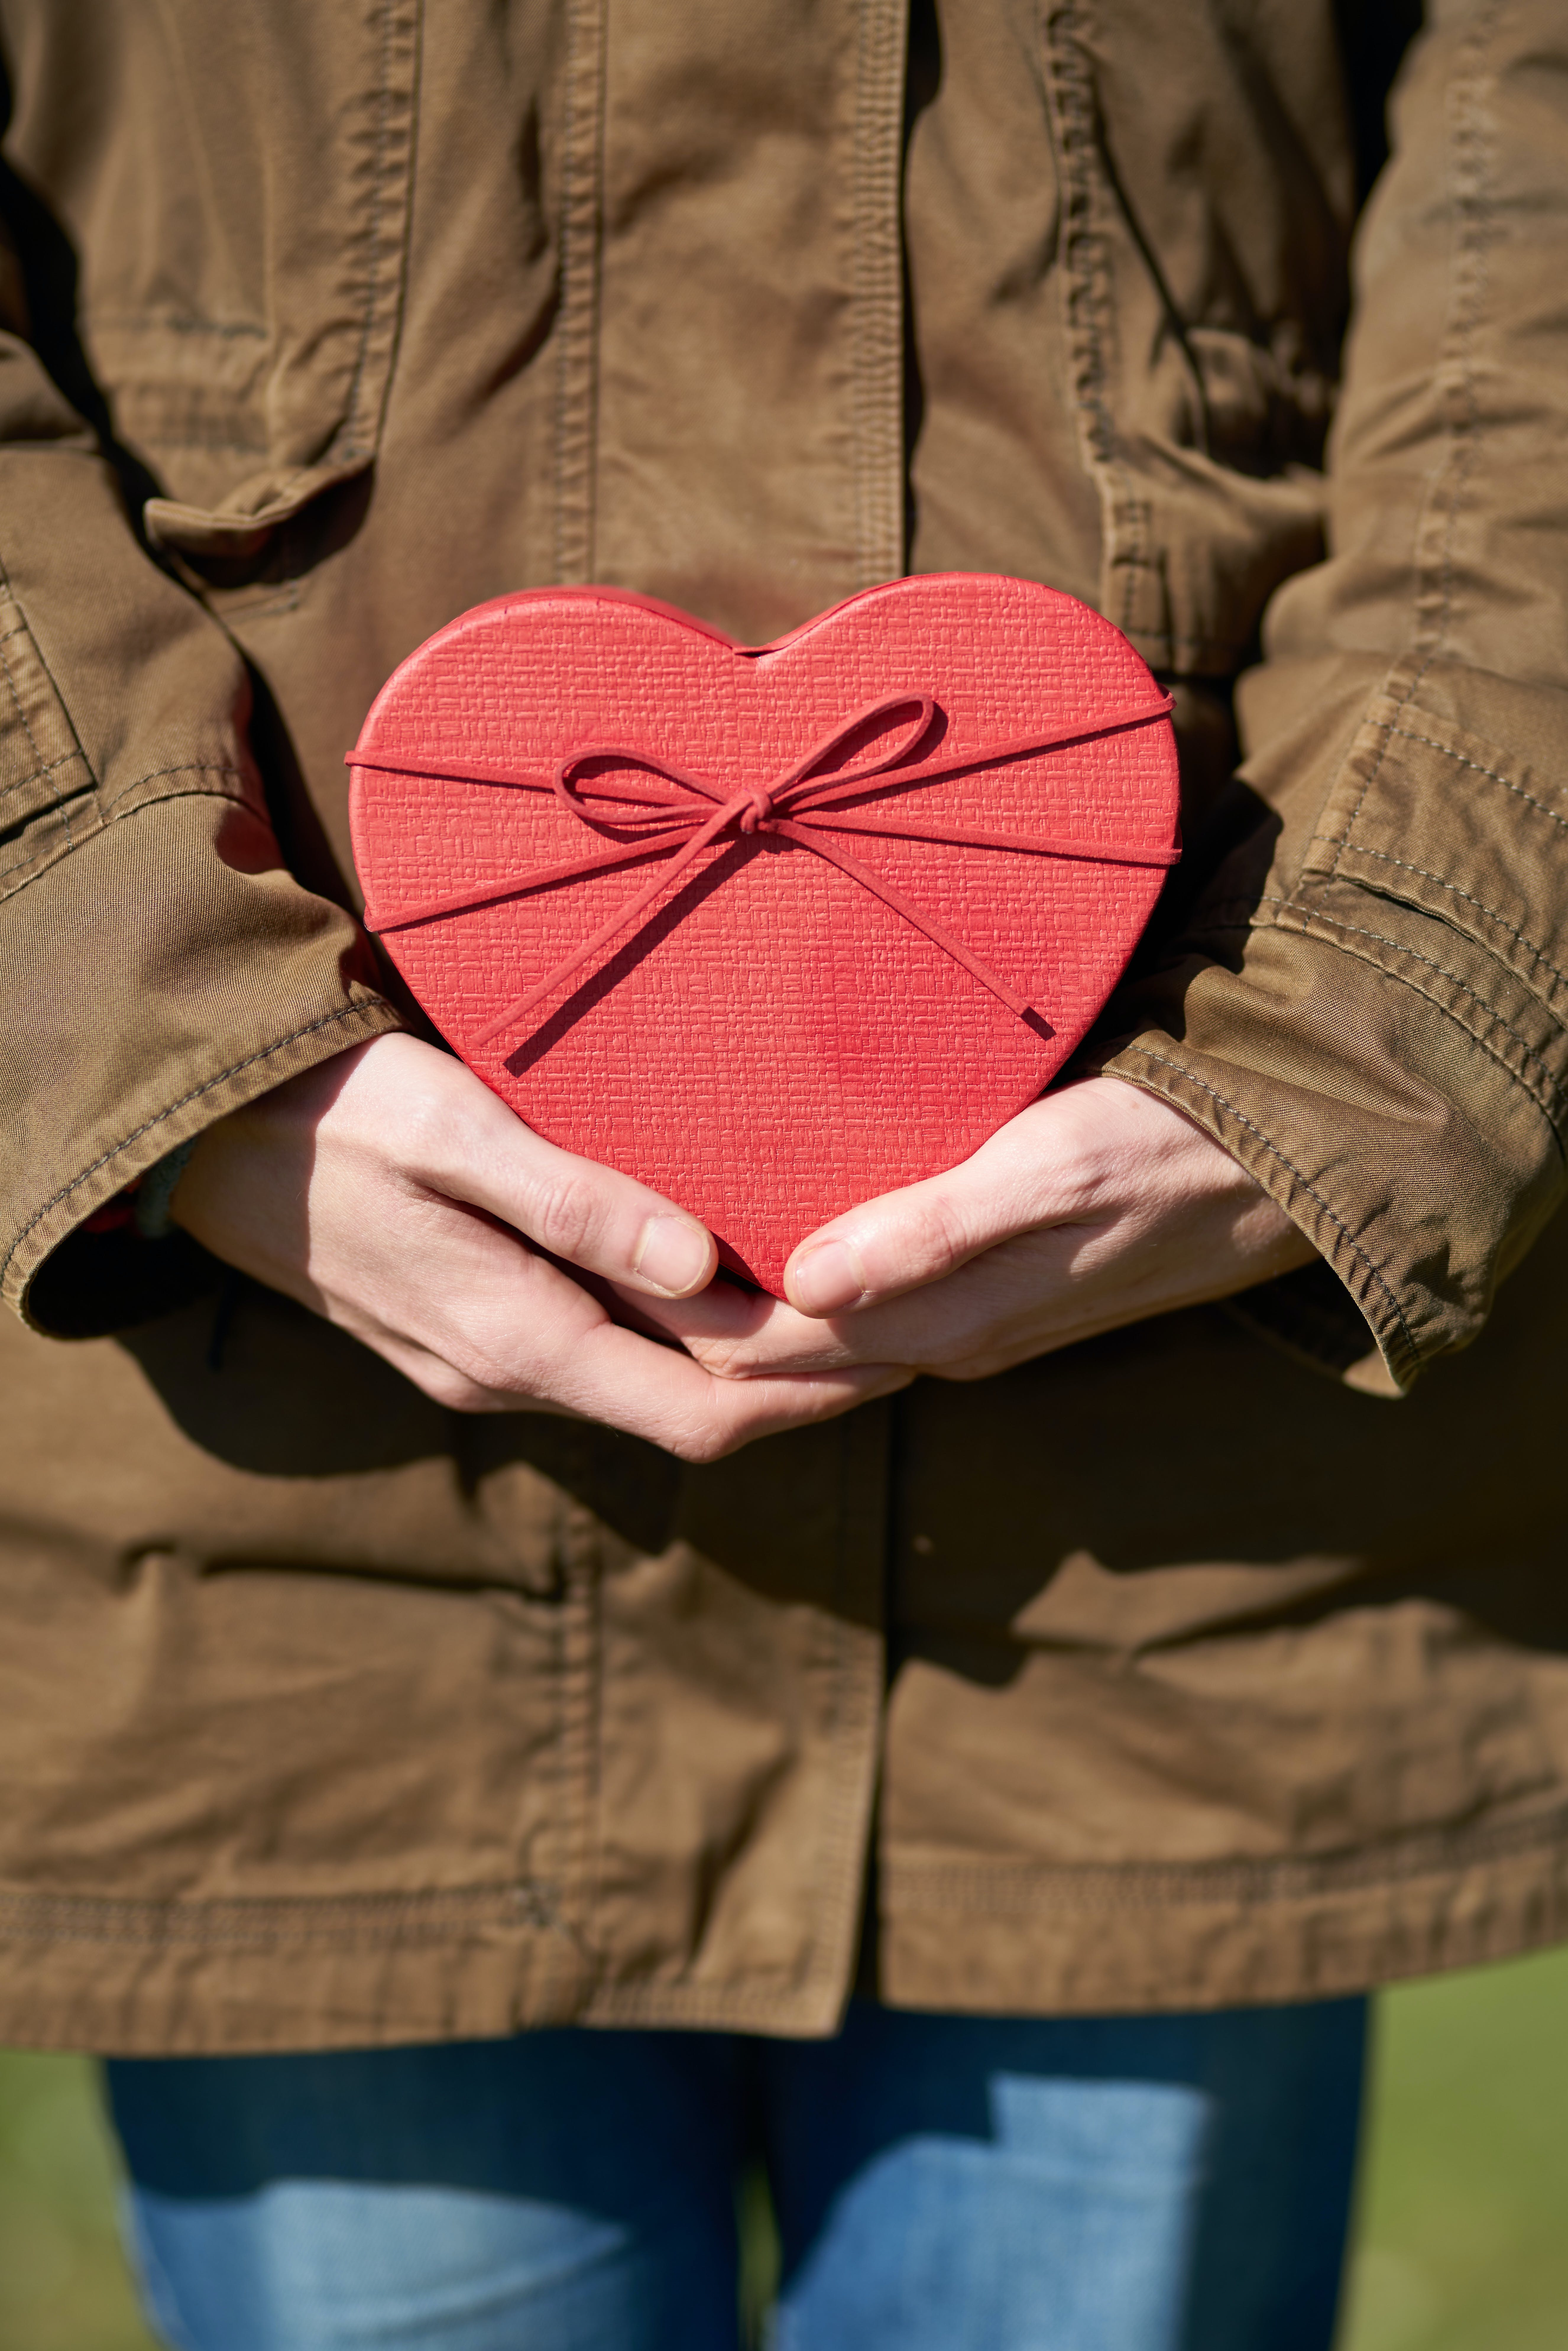 Person Holding Heart Shaped Gift